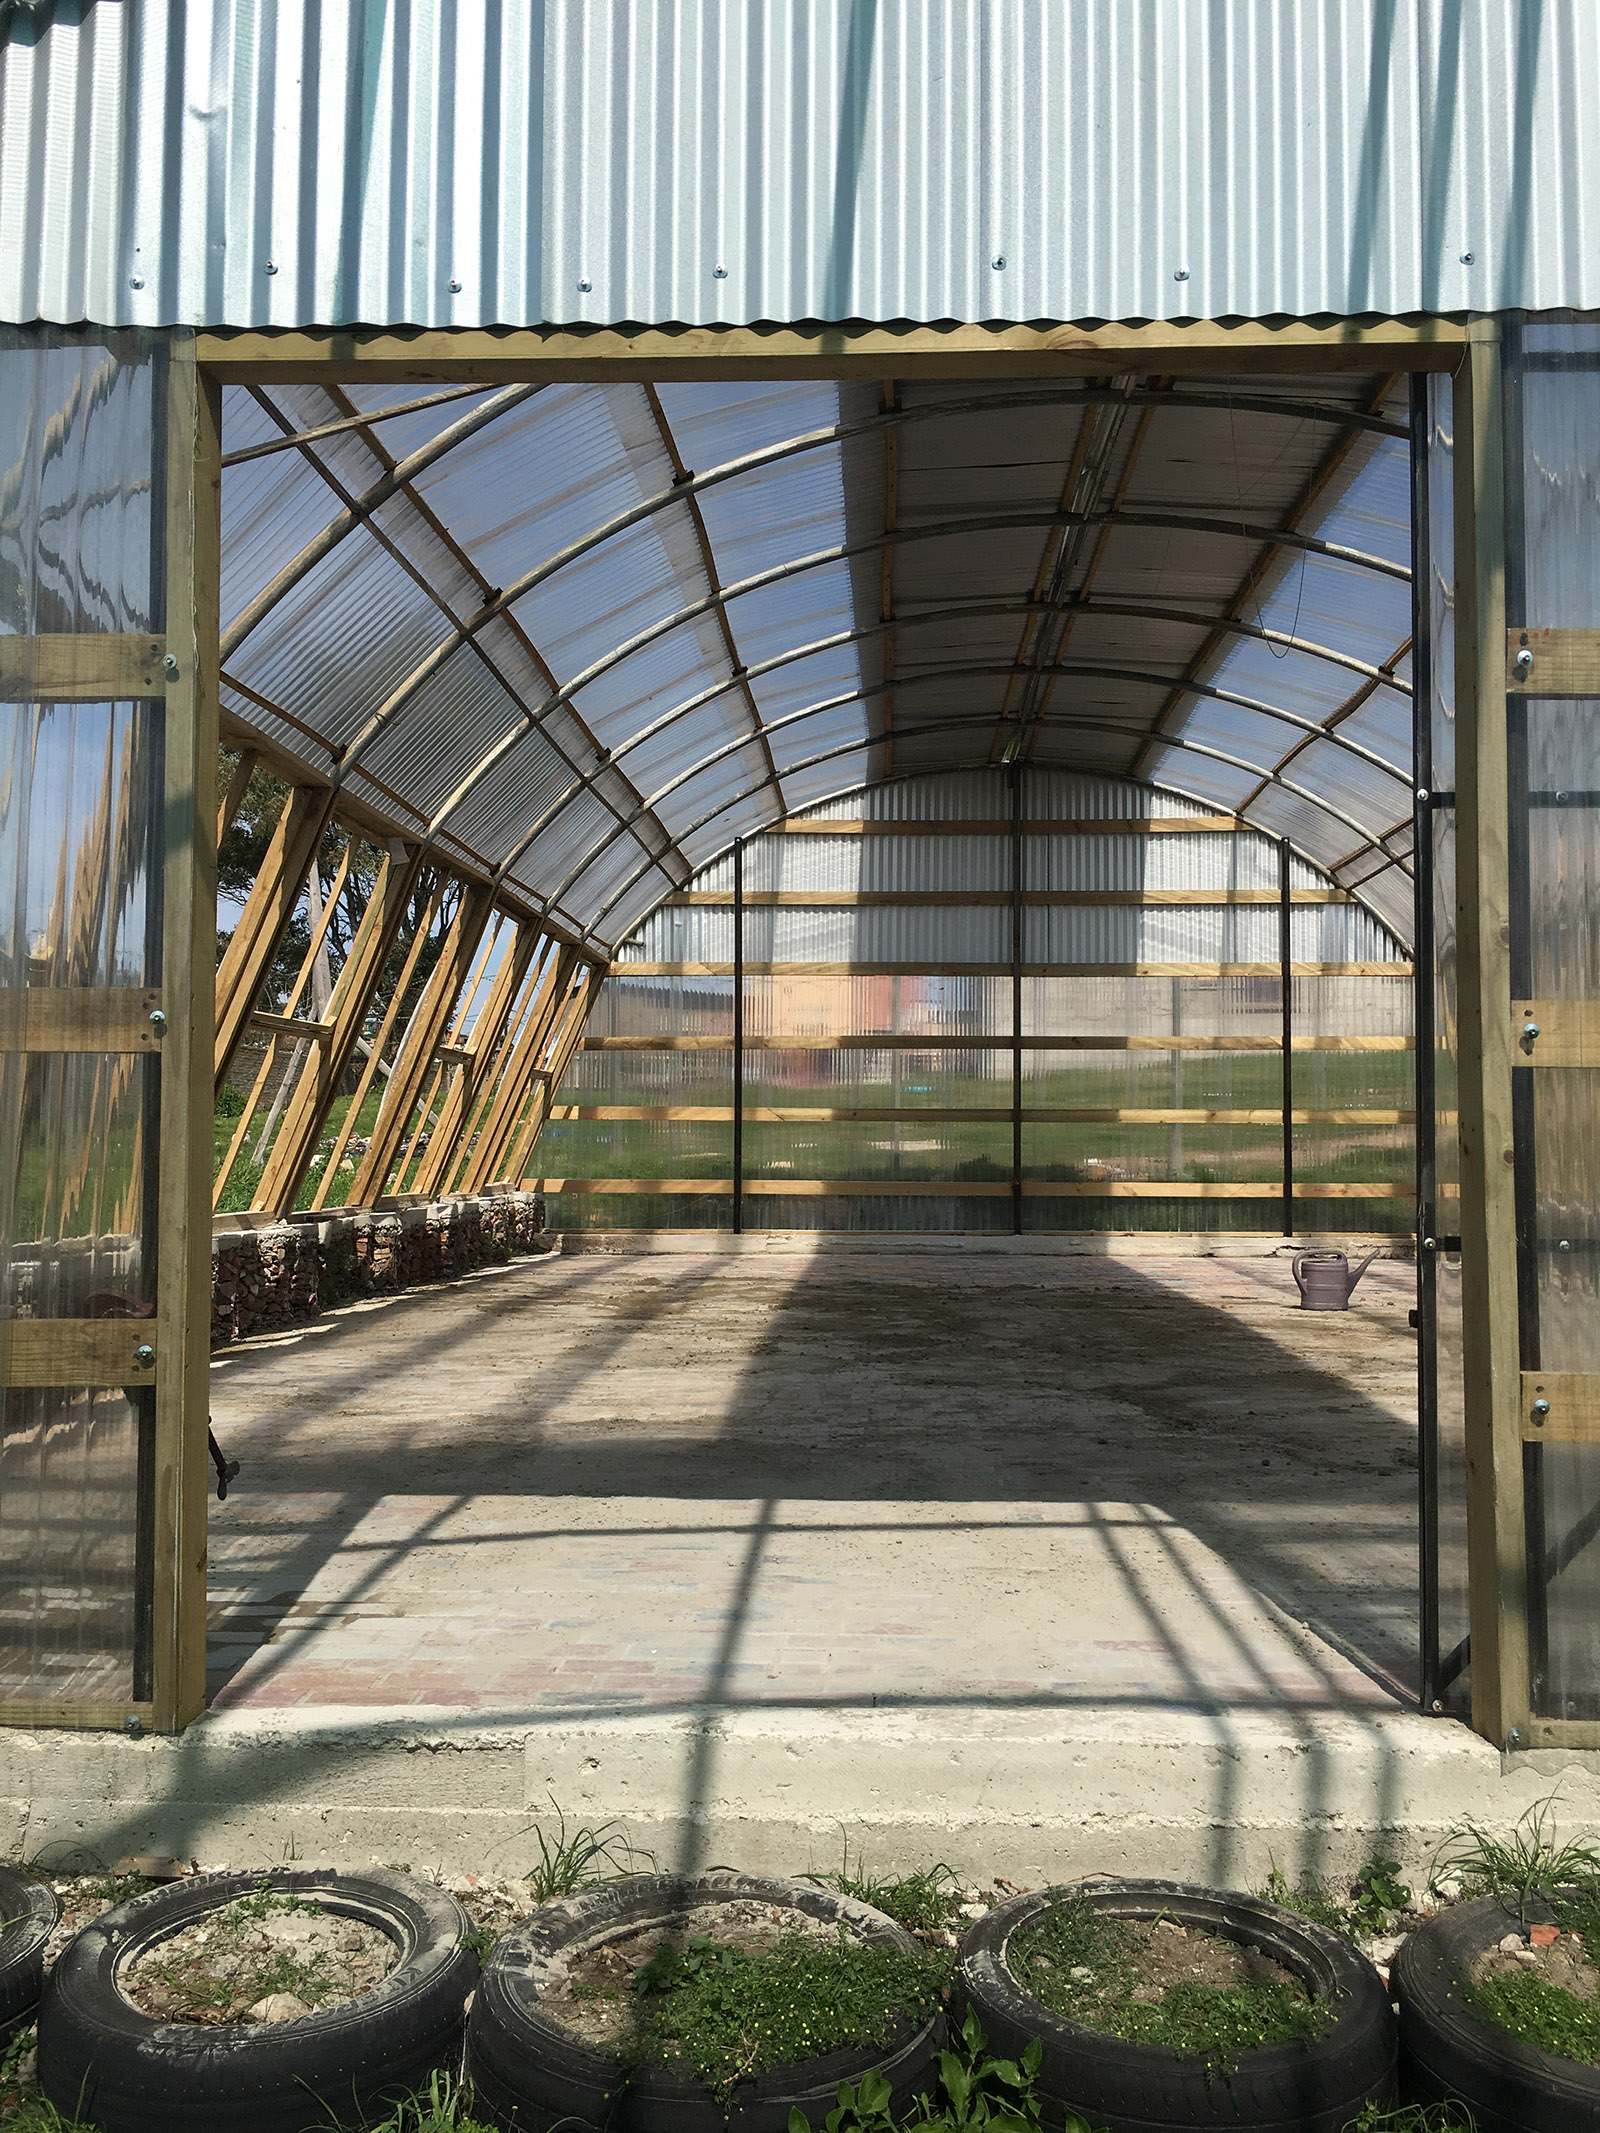 The training hall of the Lim'uphile Co-op by Collectif Saga is made from recycled tubular steel arches